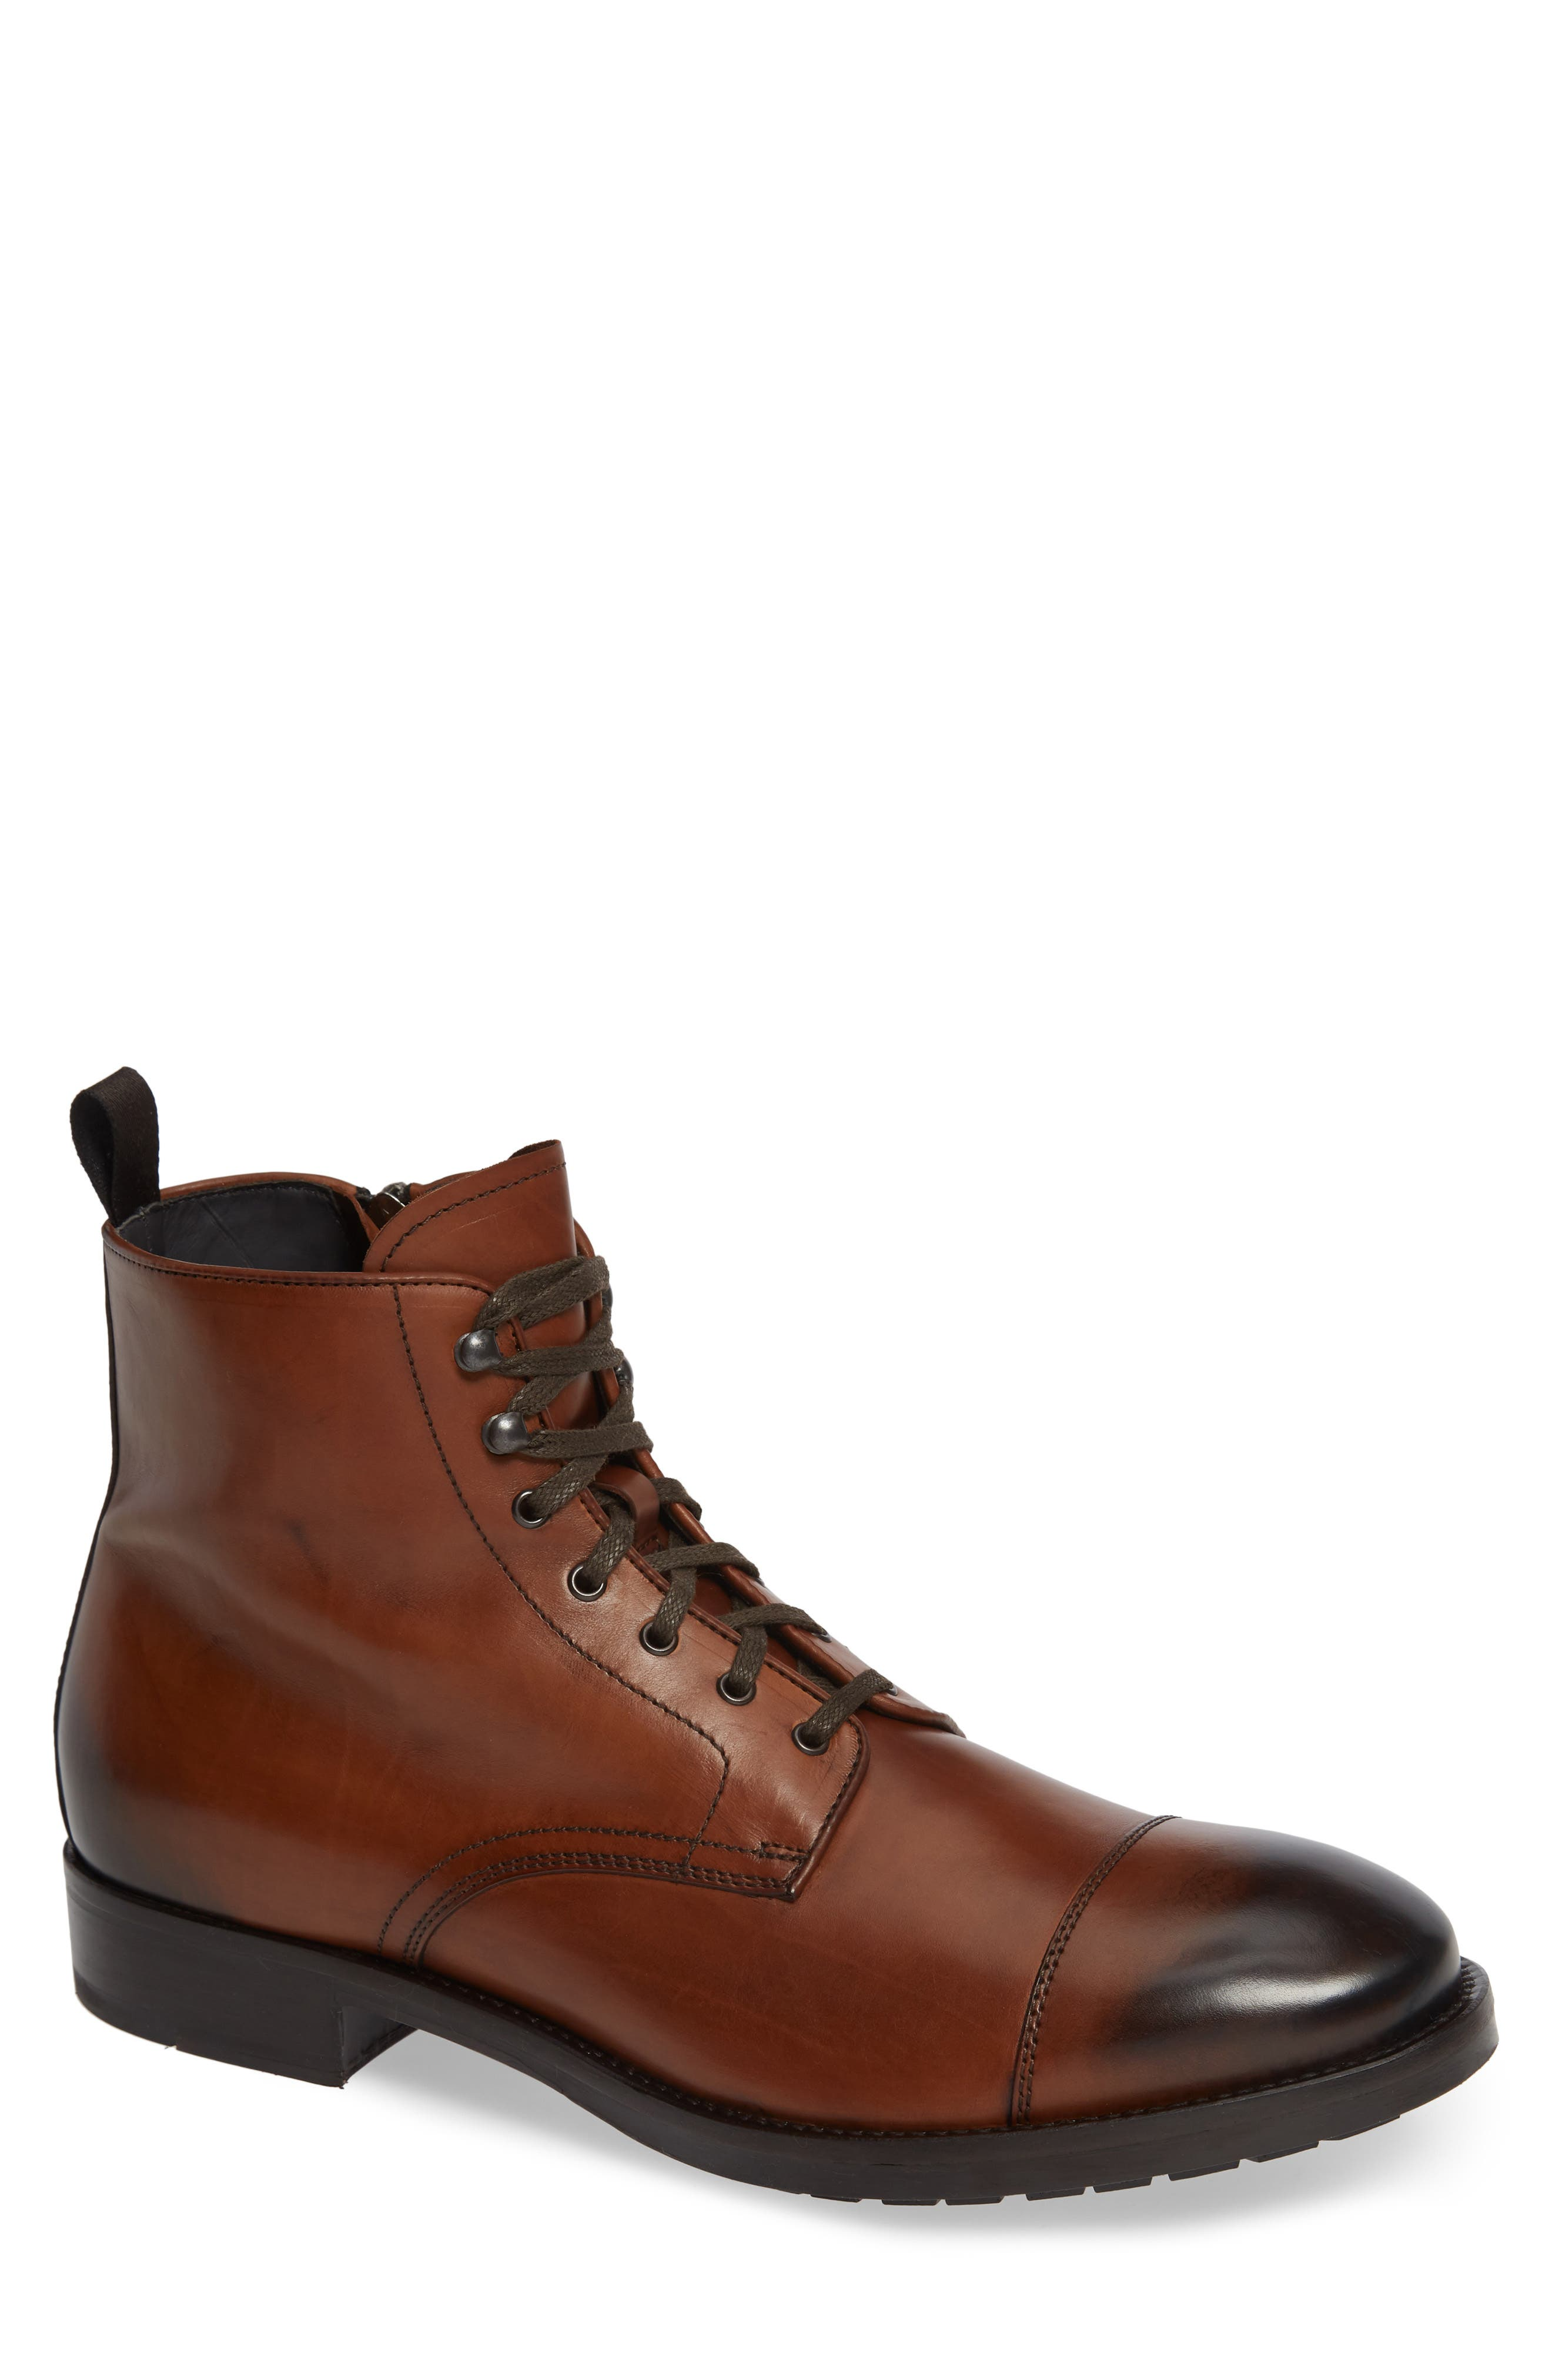 Concord Cap Toe Boot,                             Main thumbnail 1, color,                             BROWN LEATHER